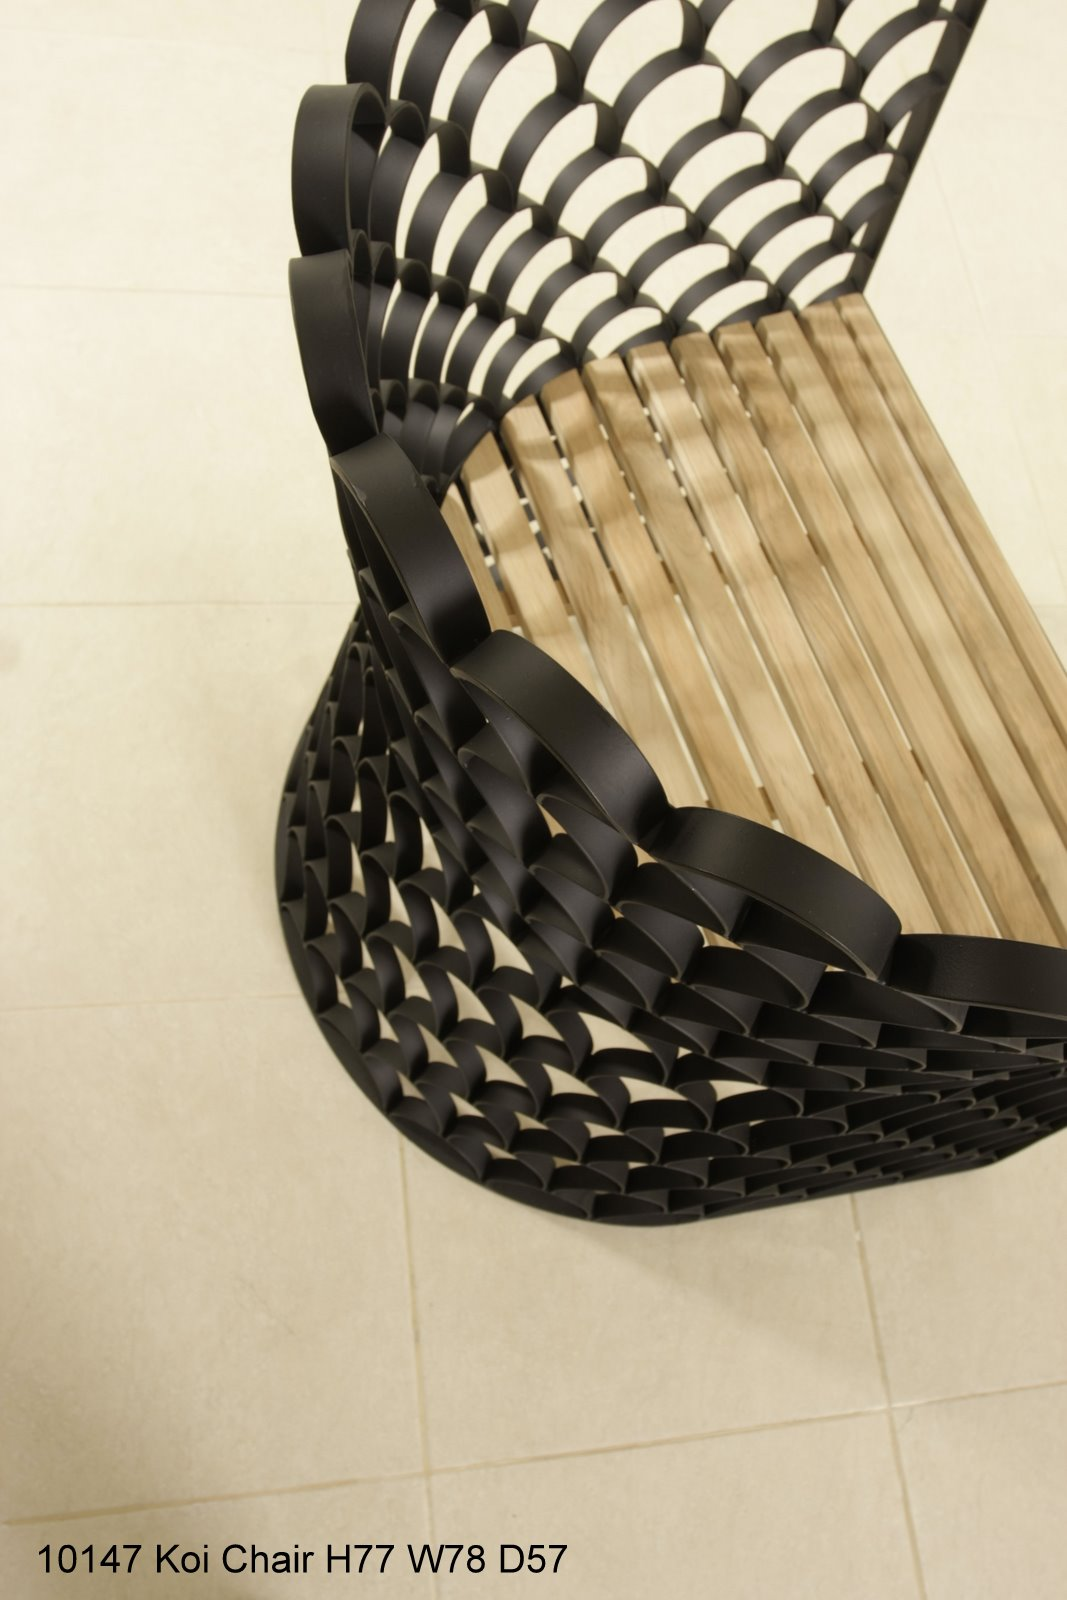 Koi chair_46.jpg